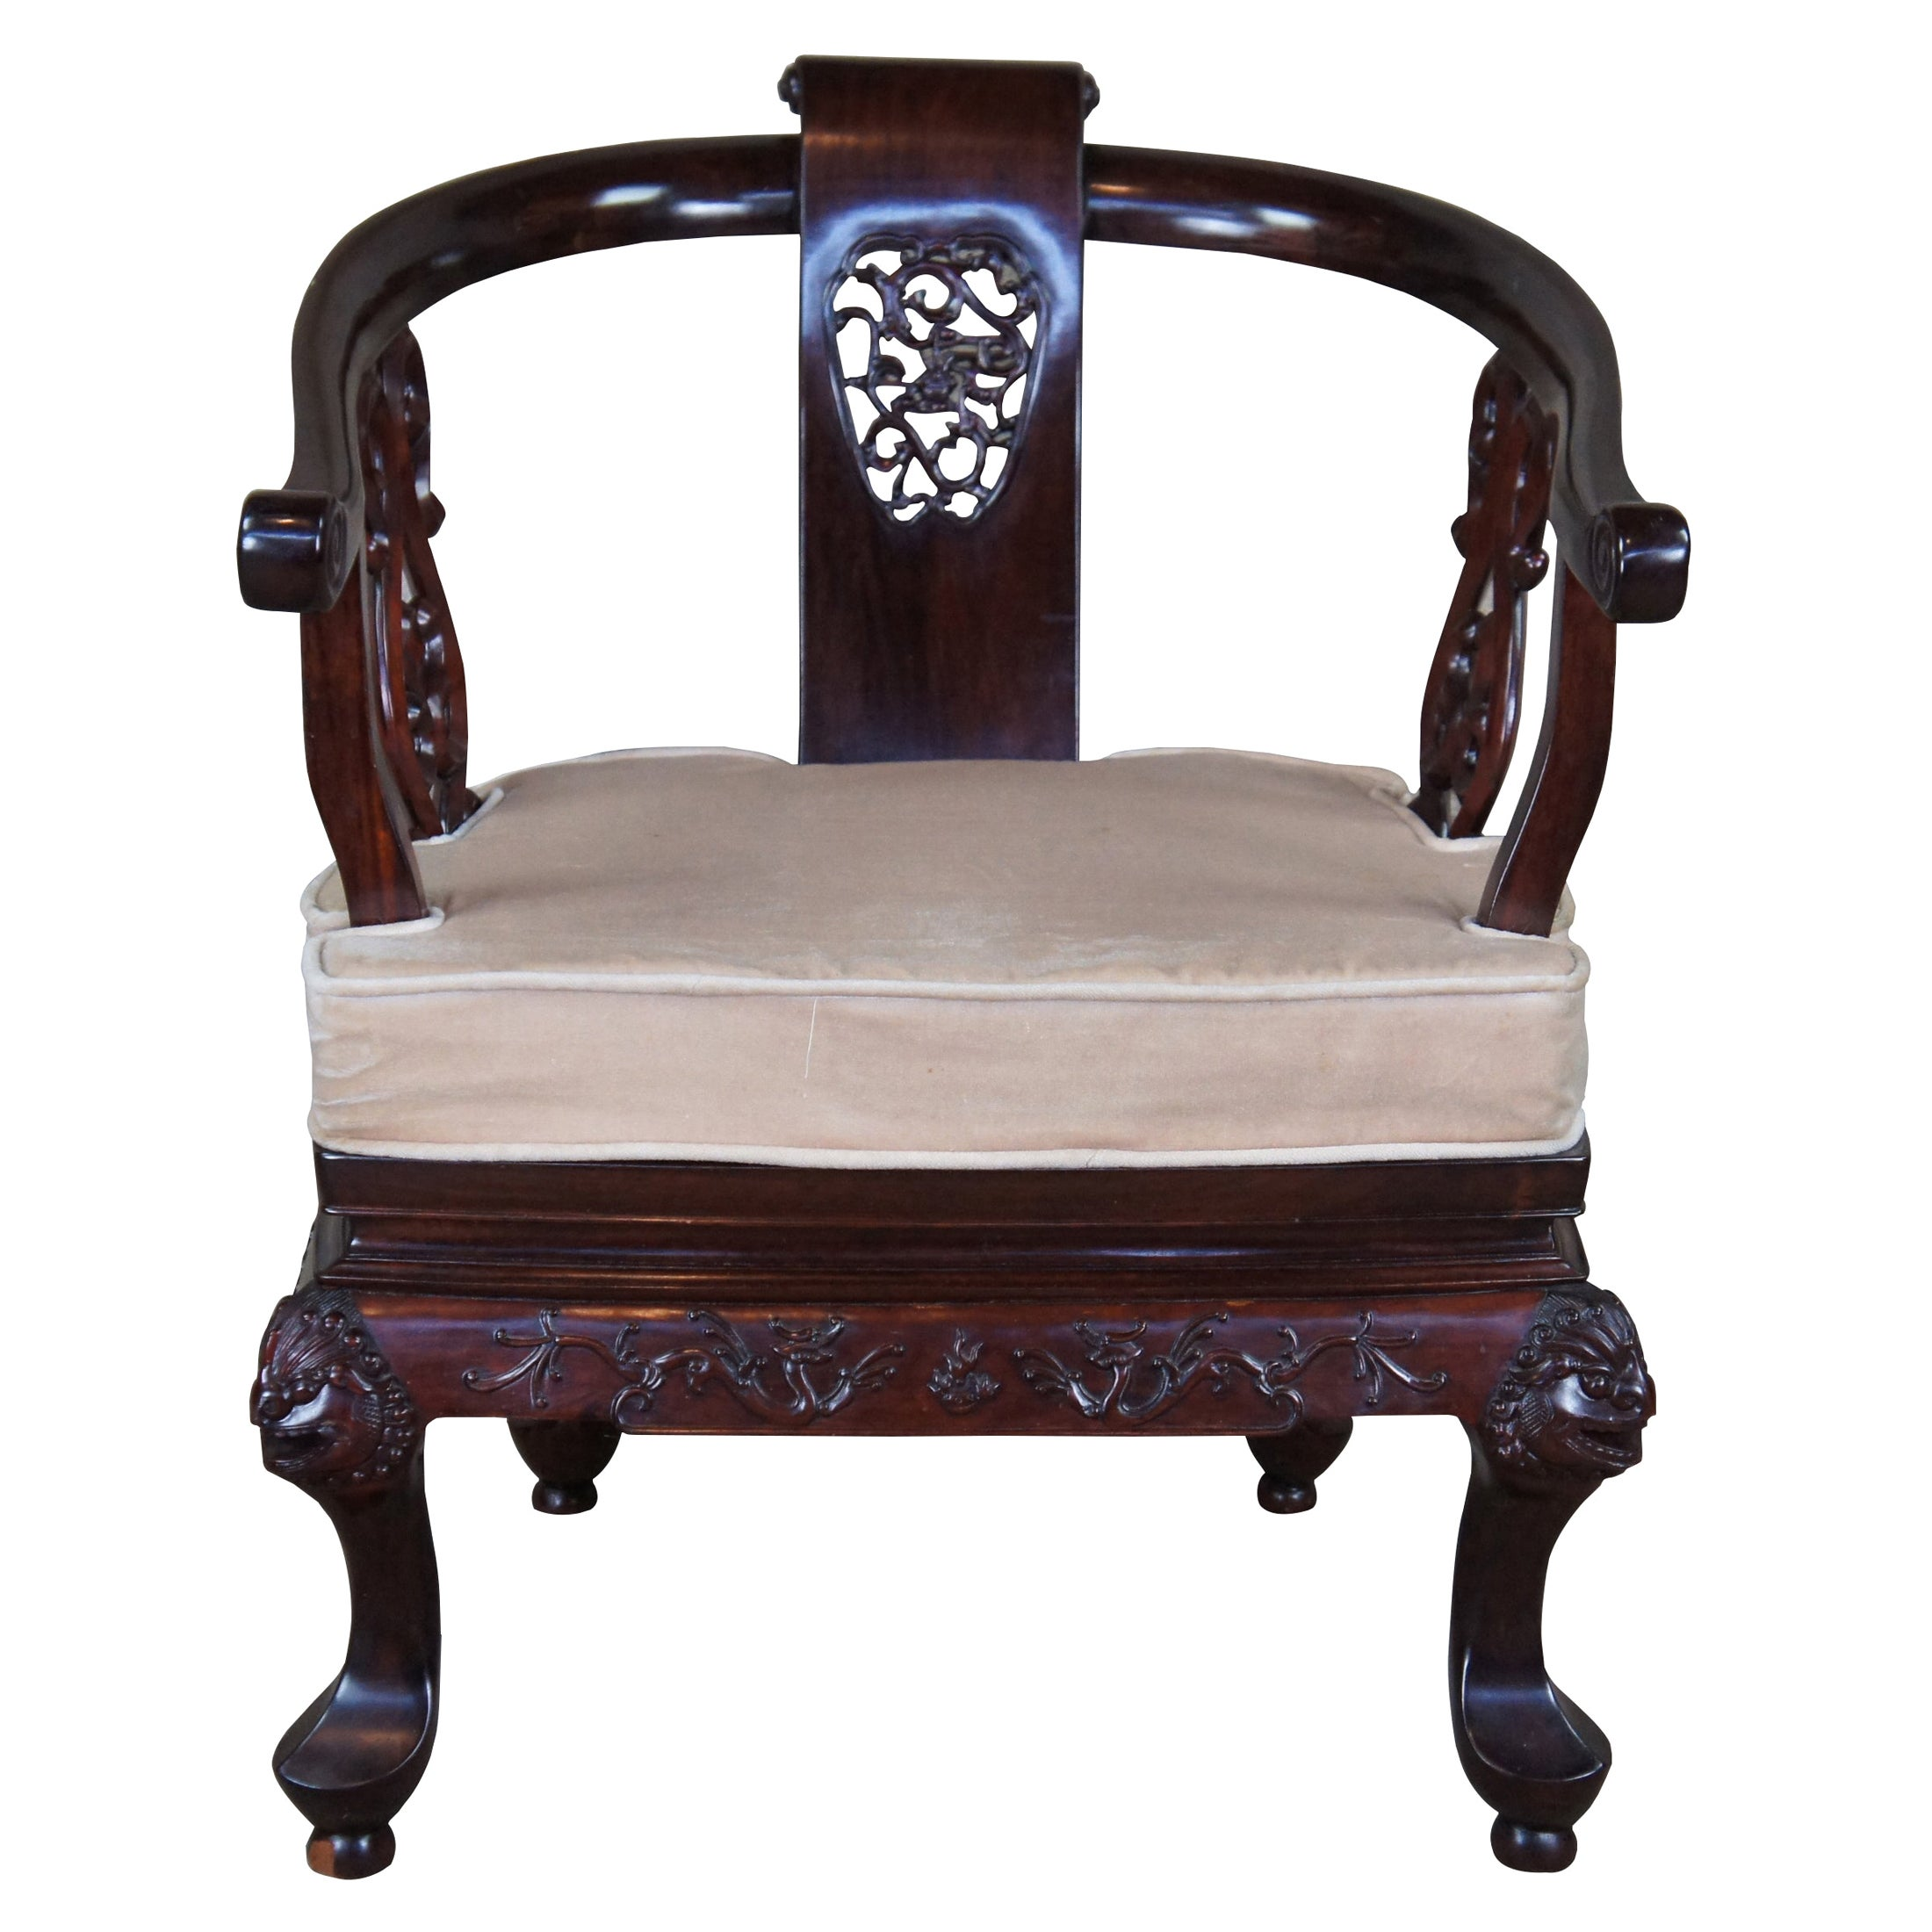 Vintage Chinese Rosewood Ornate Figural Horseshoe Yoke Arm Accent Club Chair